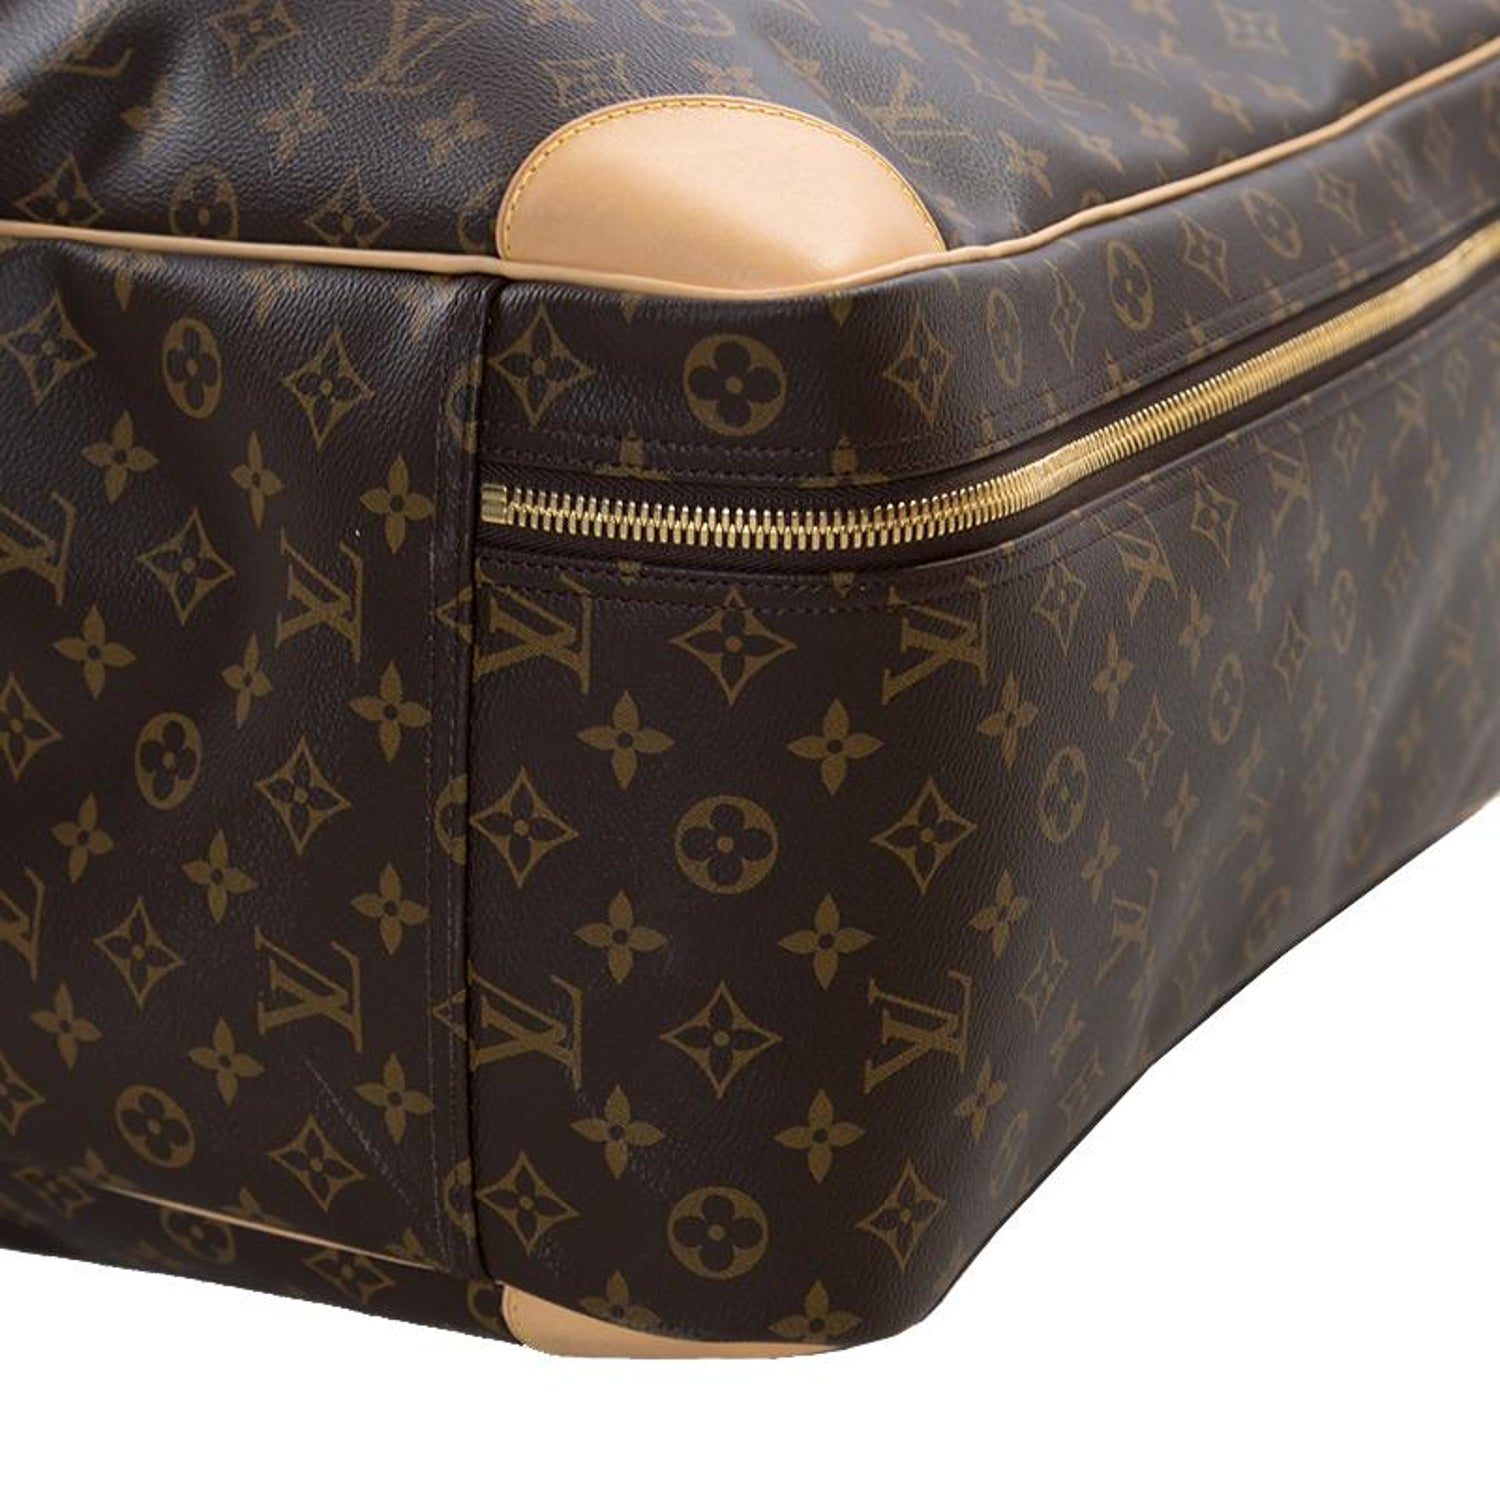 38c58c2fd886 Louis Vuitton Monogram Canvas Sirius 70 Soft Sided Suitcase at 1stdibs